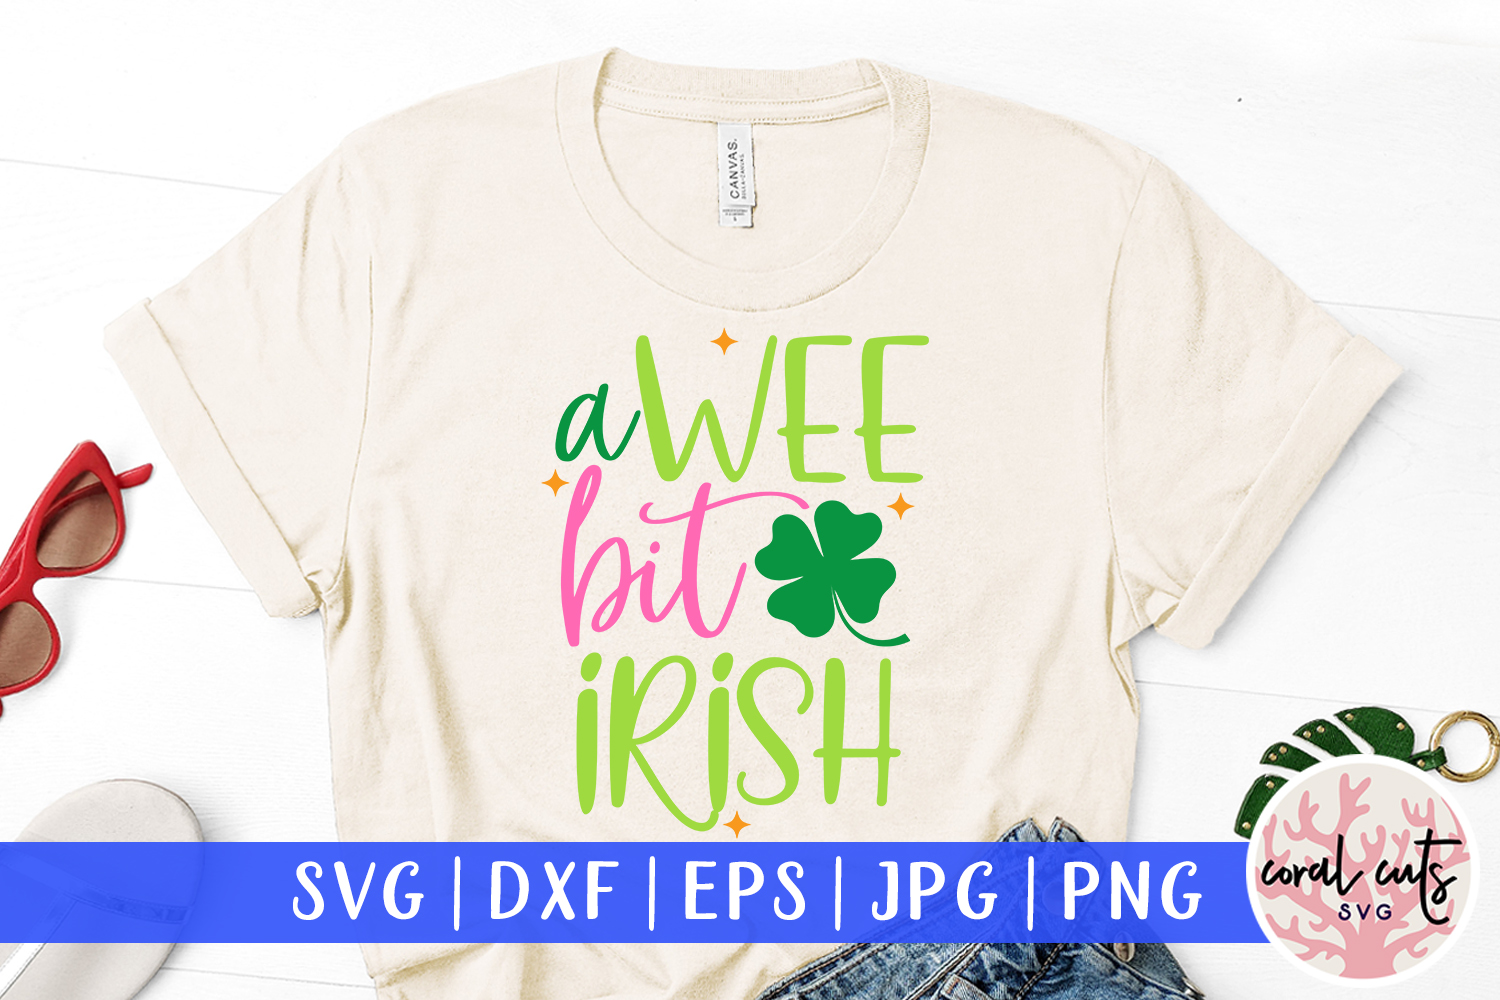 Download Free A Wee Bit Irish Svg Cut File Graphic By Coralcutssvg Creative for Cricut Explore, Silhouette and other cutting machines.